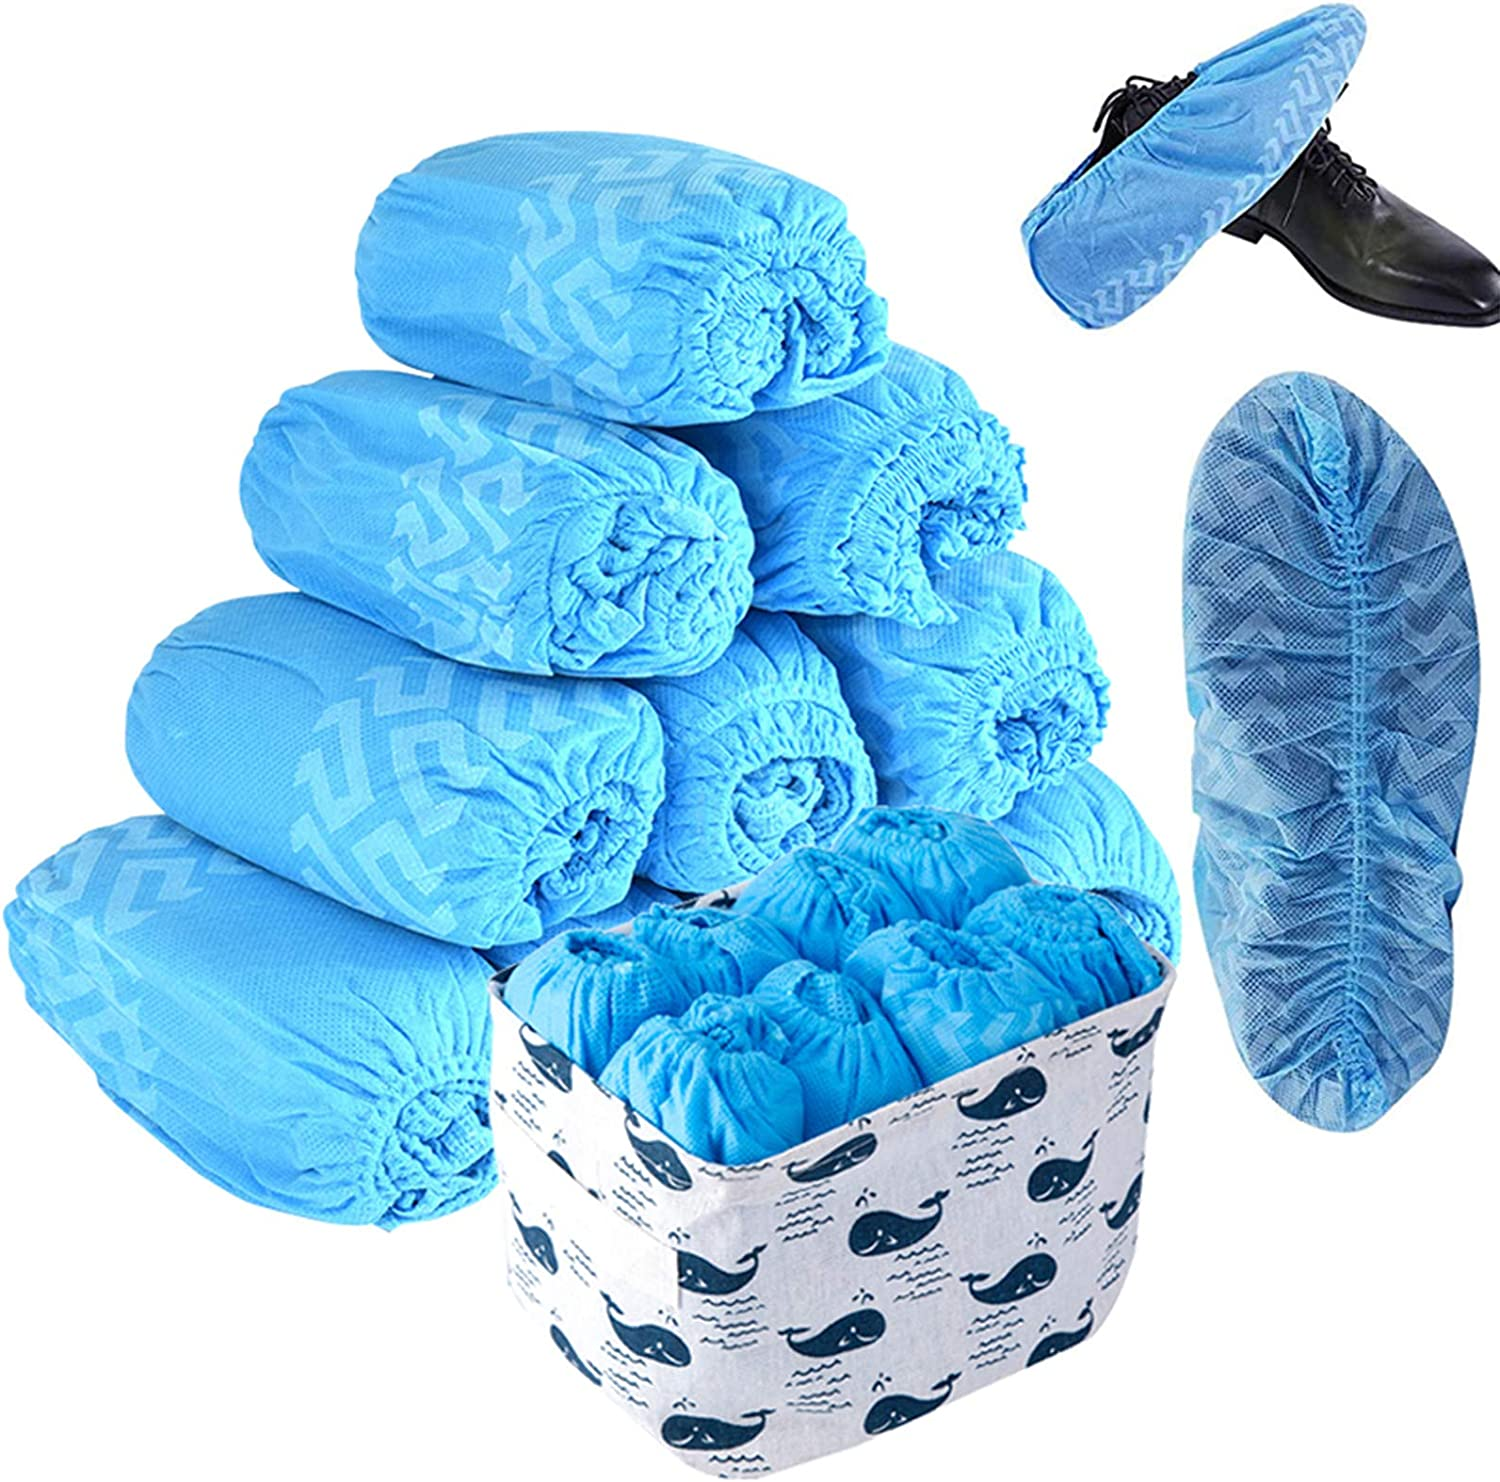 Details about  /200 pcs Disposable Shoe Covers Anti-slip Non-woven Dust Proof for Indoor Home